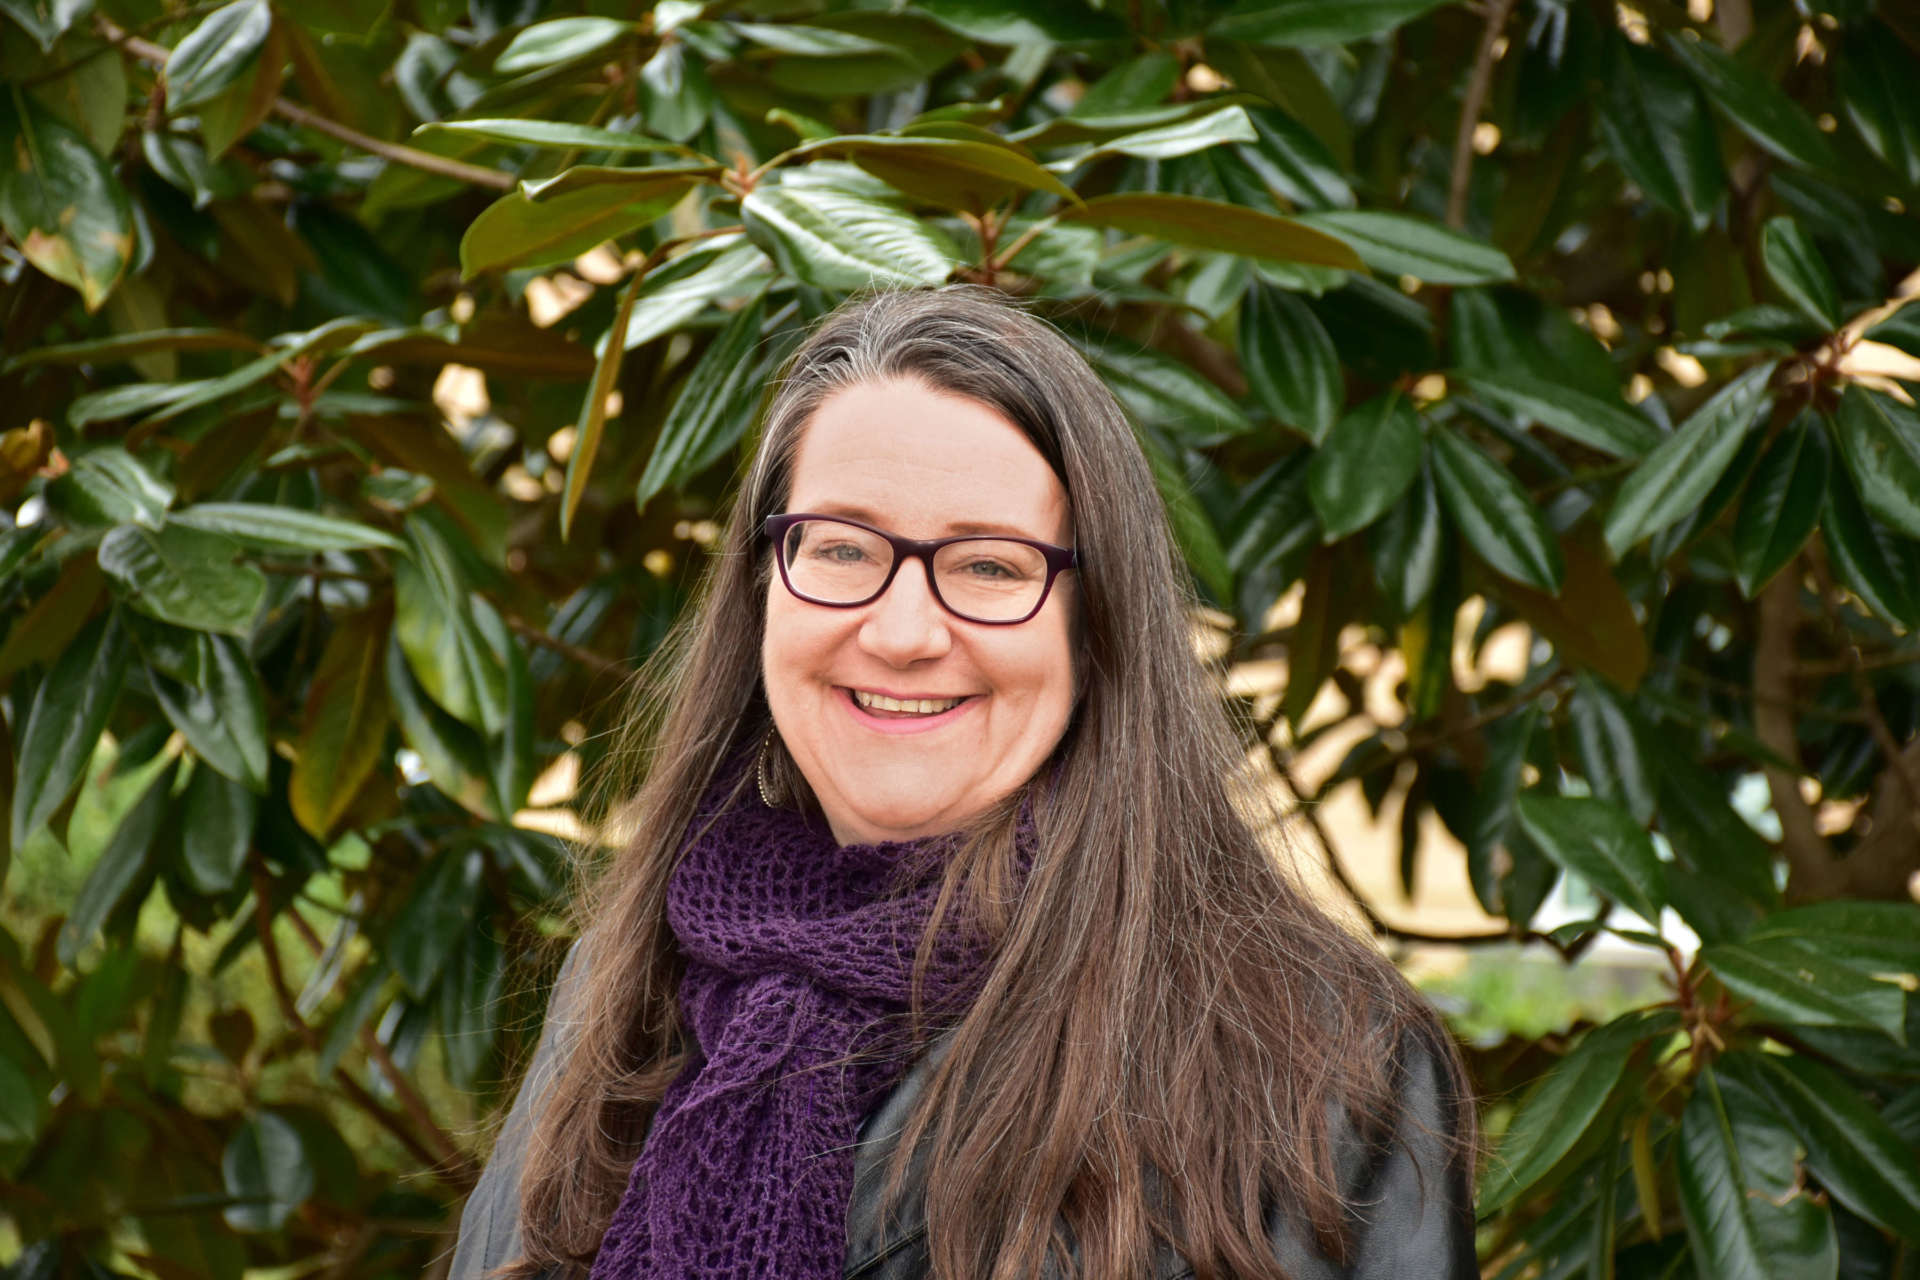 Rachael Meads, assistant director of student engagement and adjunct Appalachian studies professor